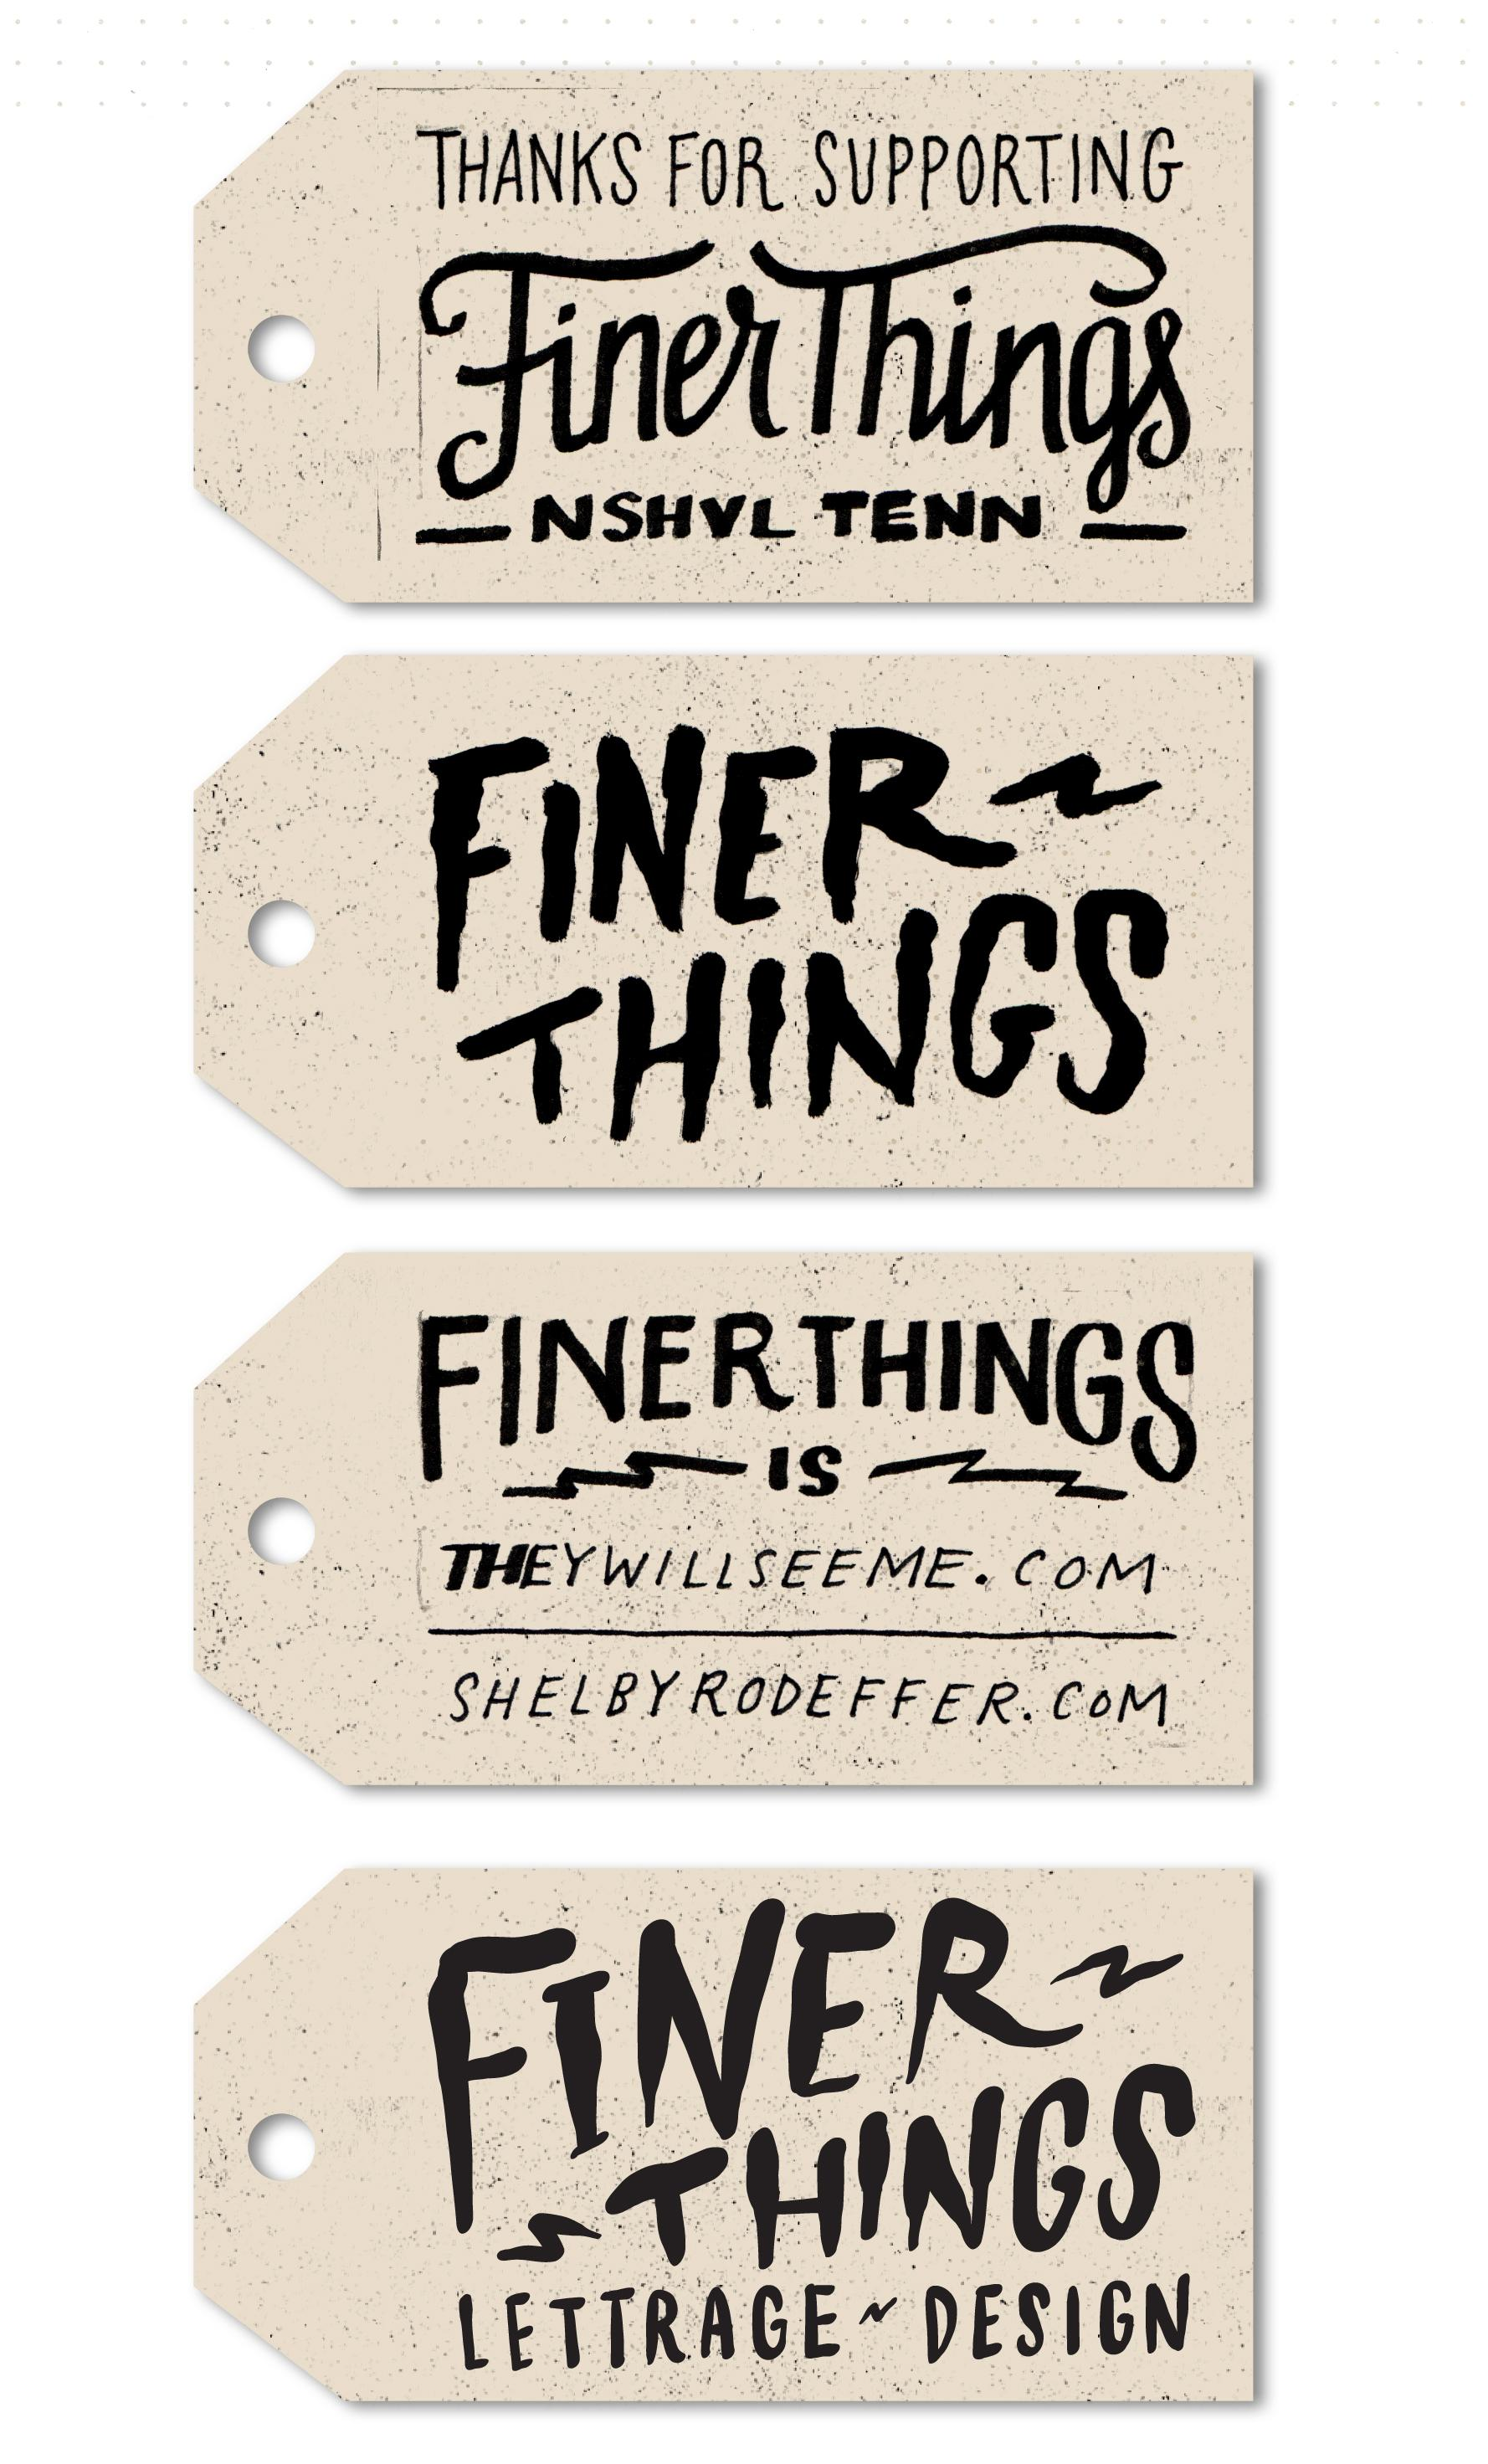 Finer Things - Labels and Tags - image 13 - student project